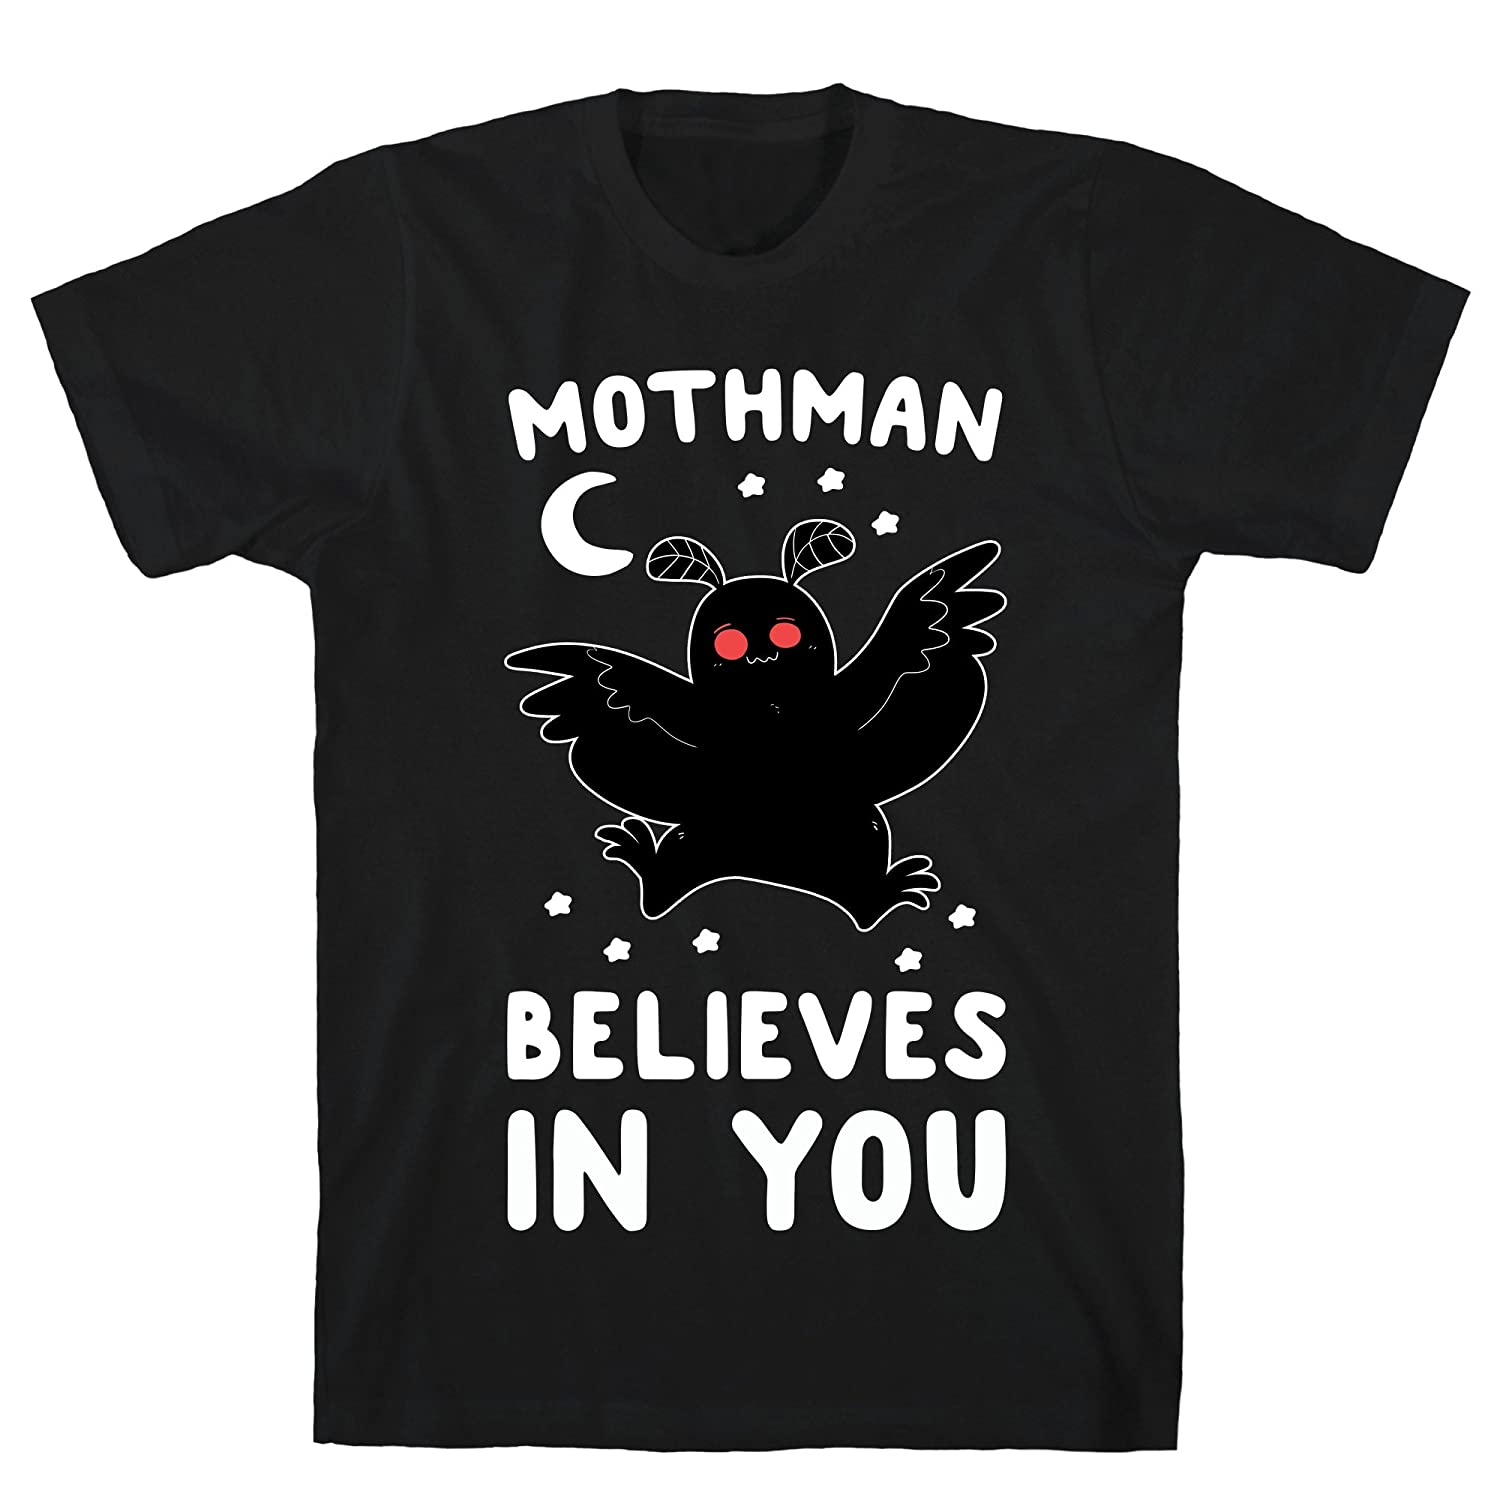 f6df1cd4bc Amazon.com: LookHUMAN Mothman Believes in You Black Men's Cotton Tee:  Clothing